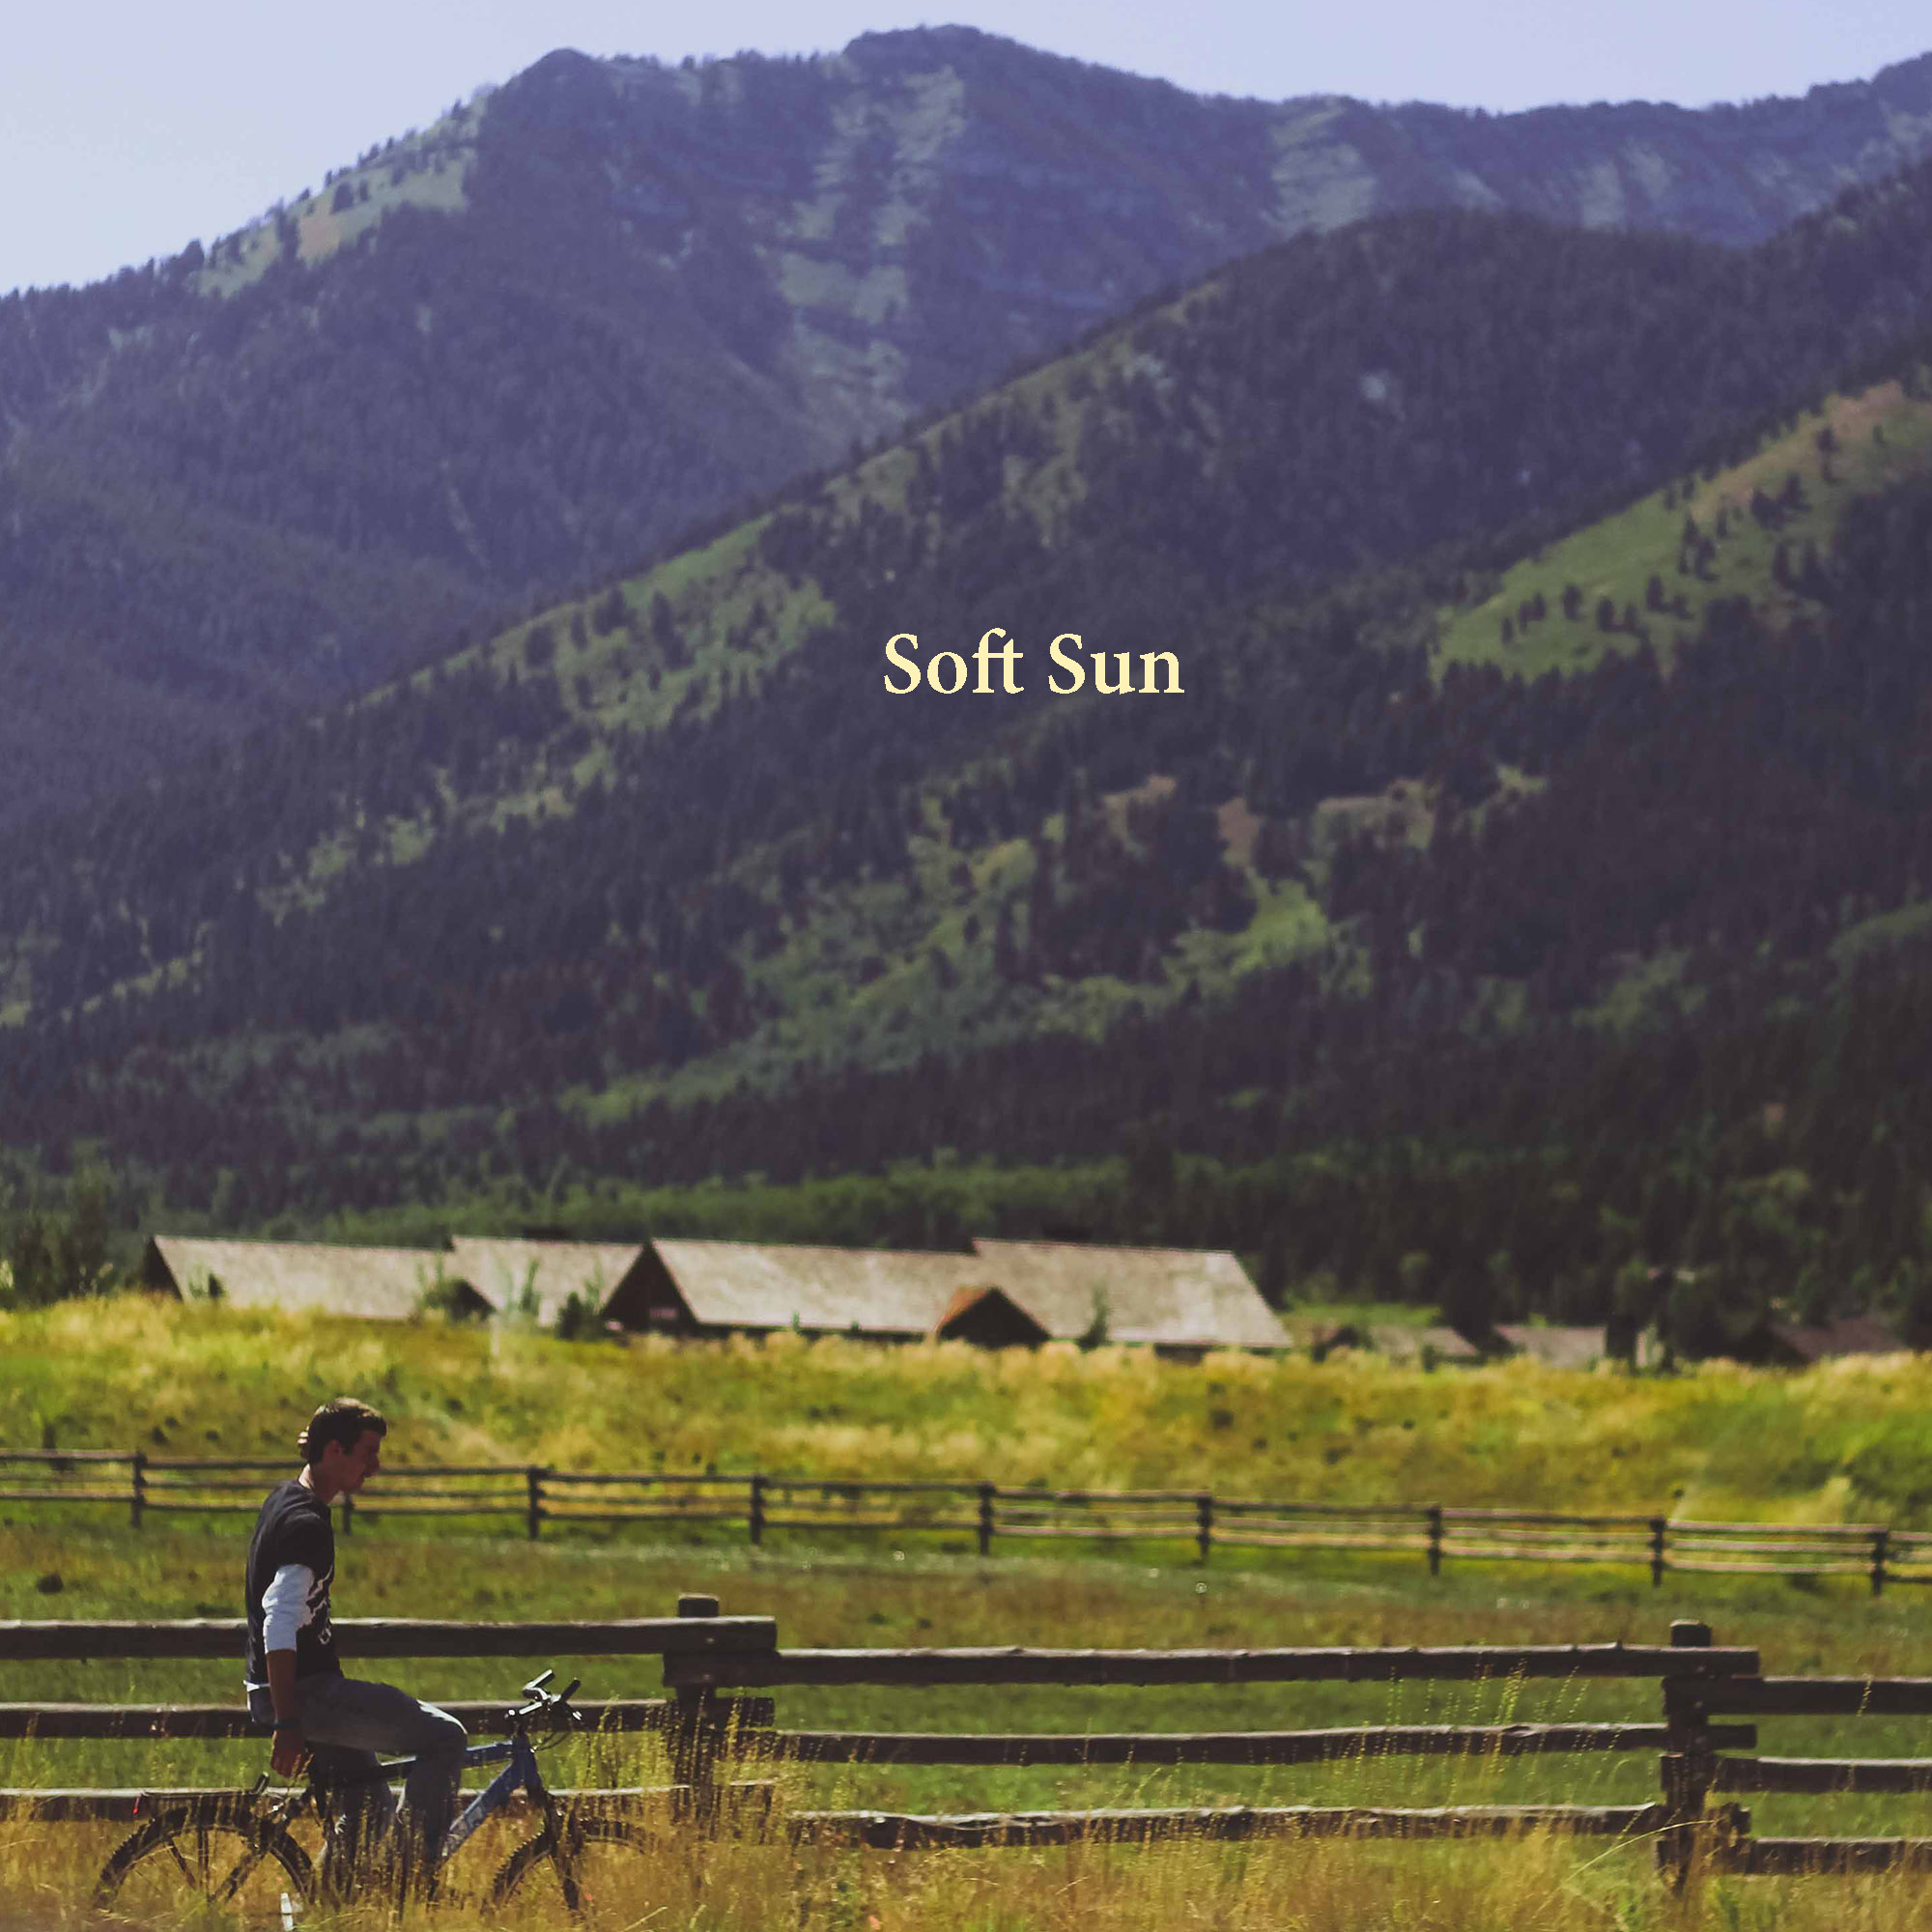 Soft Sun   Driving through the Midwest. Featuring Clayton Wyatt, Punch Brothers, the Brazen Youth, and more. By Sophie Minello.